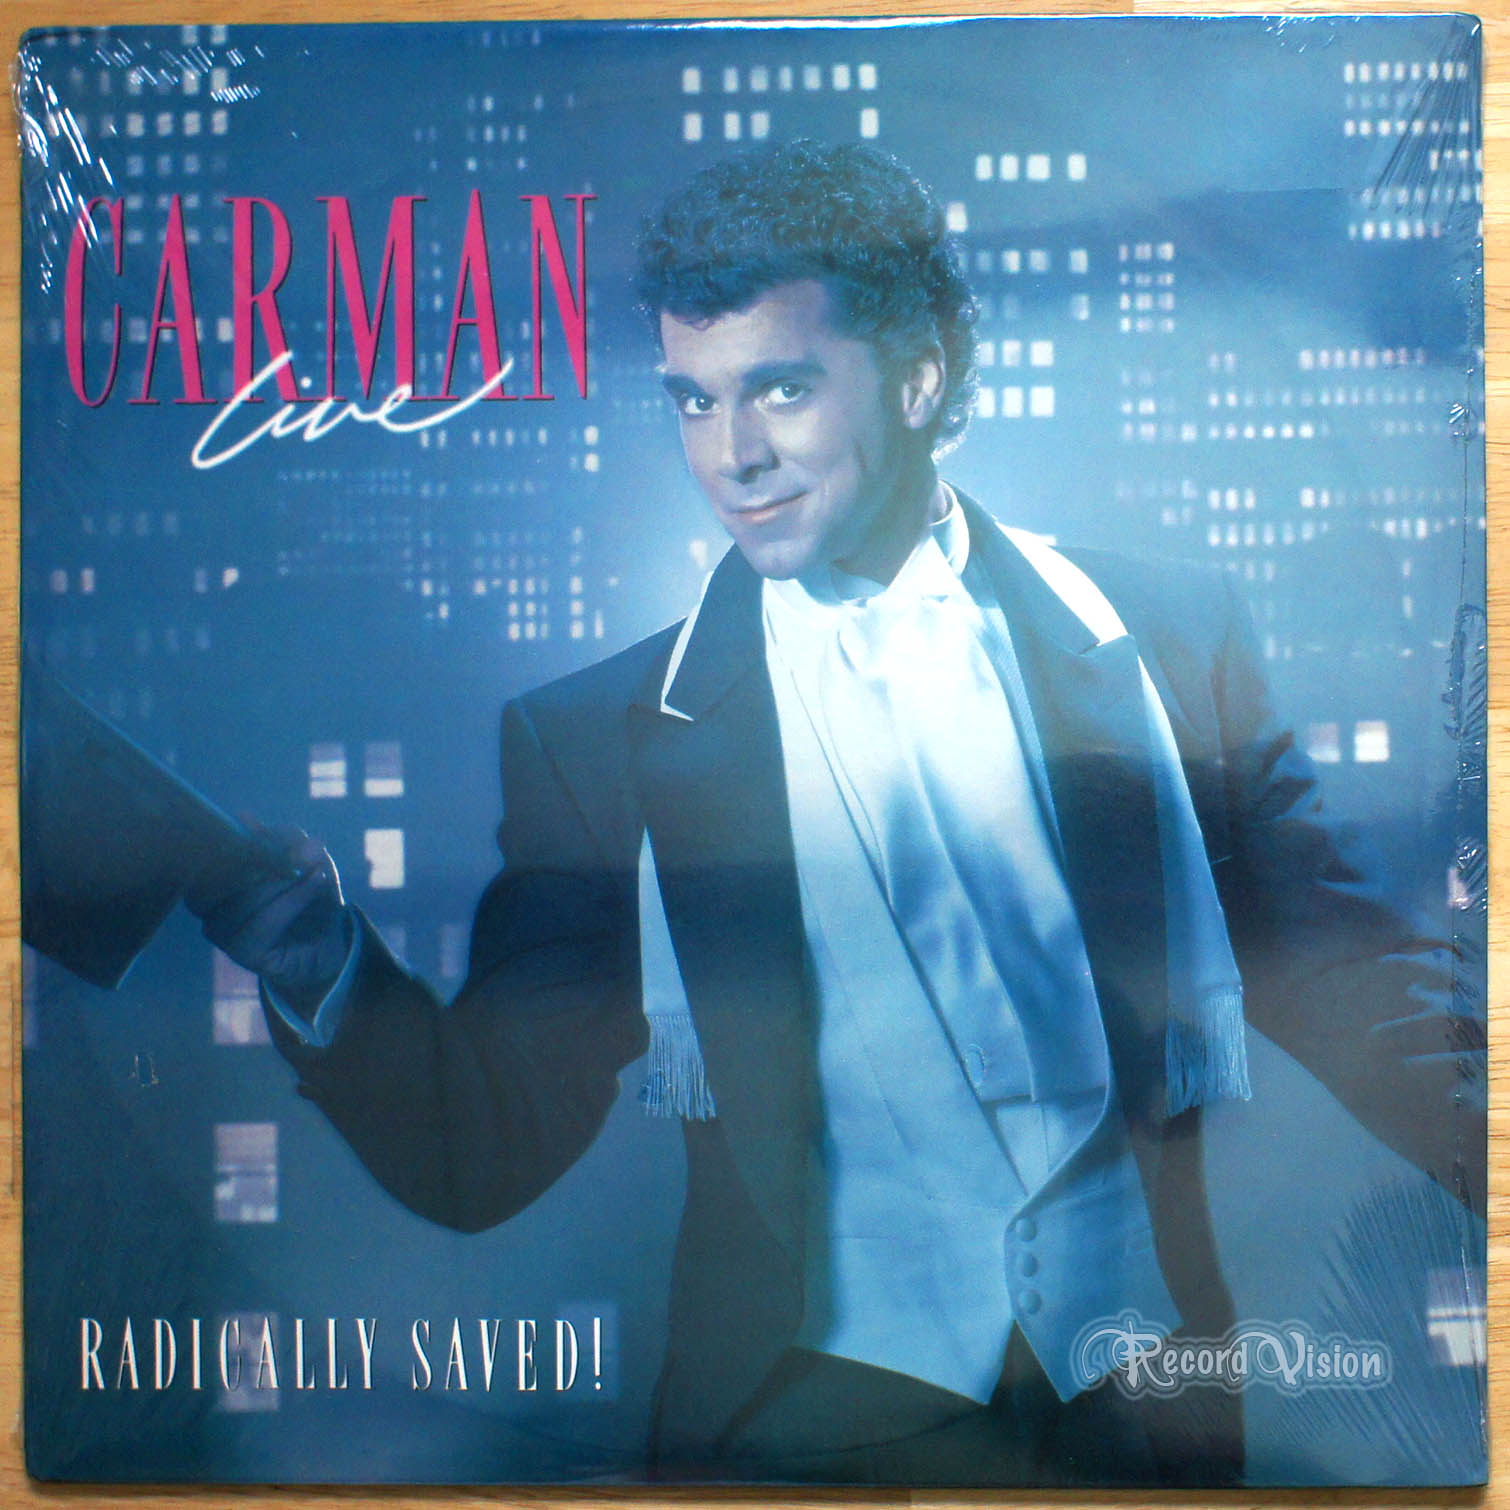 CARMAN - Live: Radically Saved - 33T